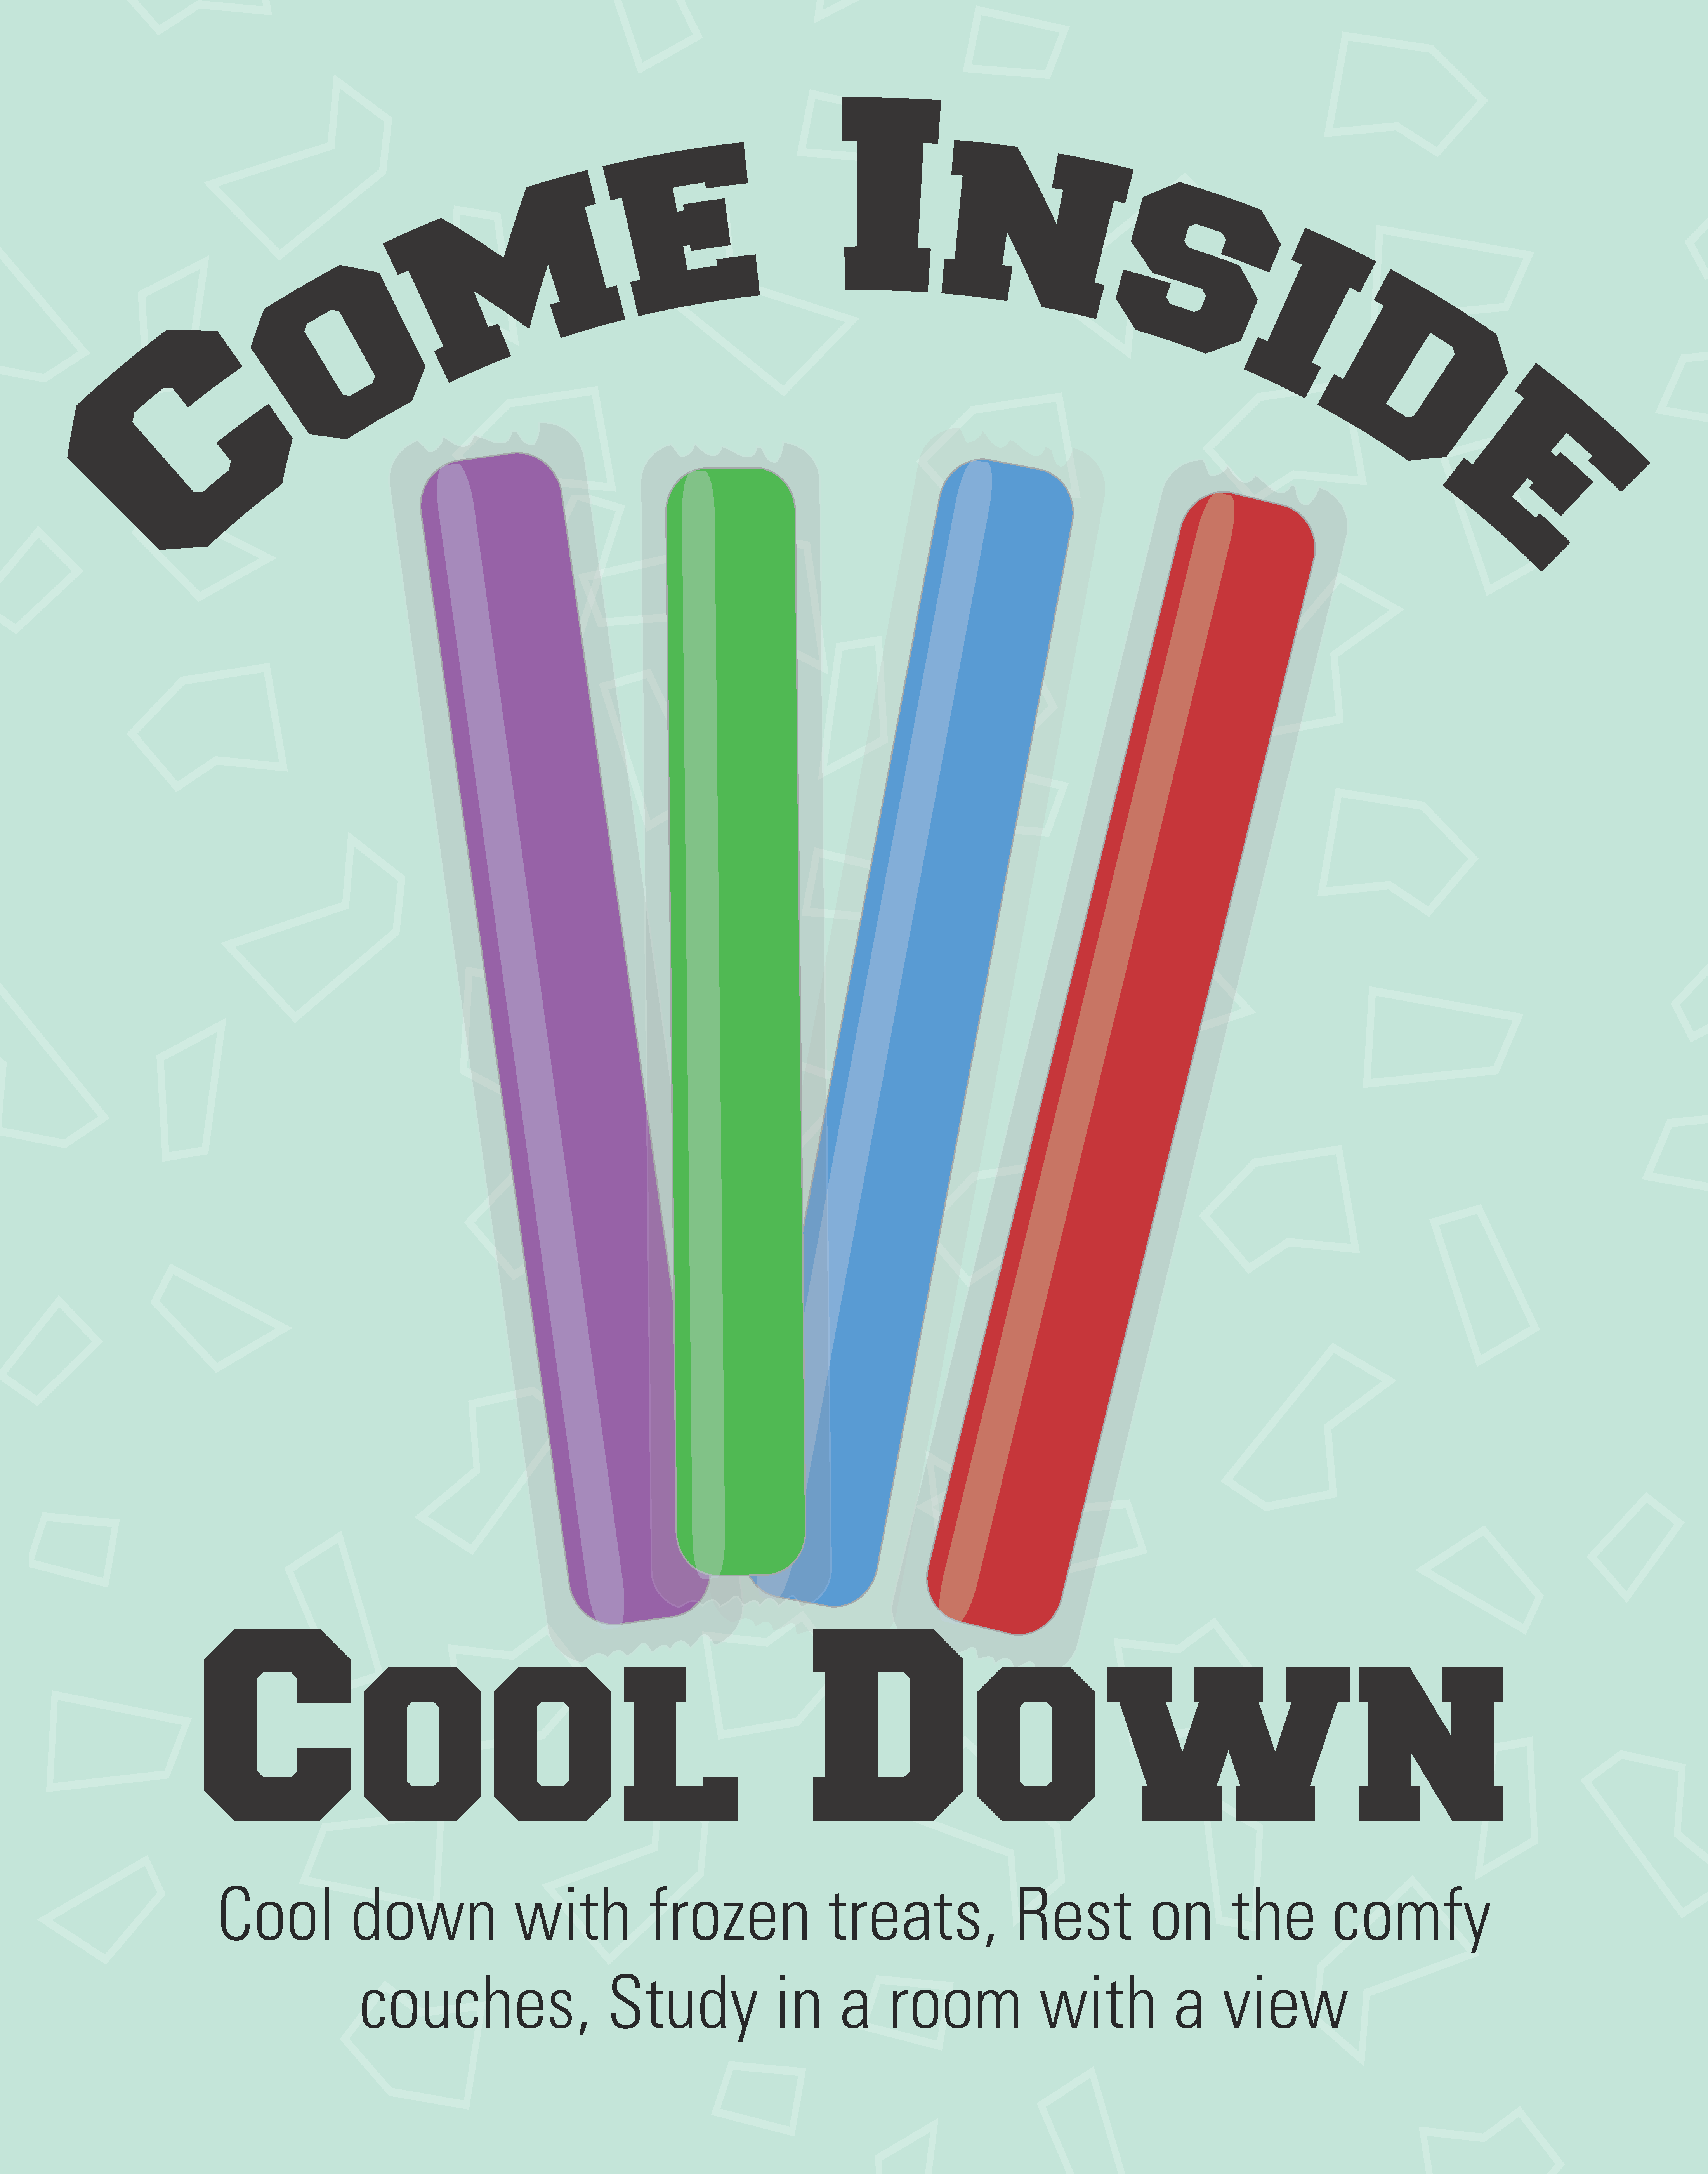 "Image of 4 popsicles that reads ""Come Inside. Cool down. Cool down with frozen treats. Rest on the comfy couches. Study in a room with a view."""